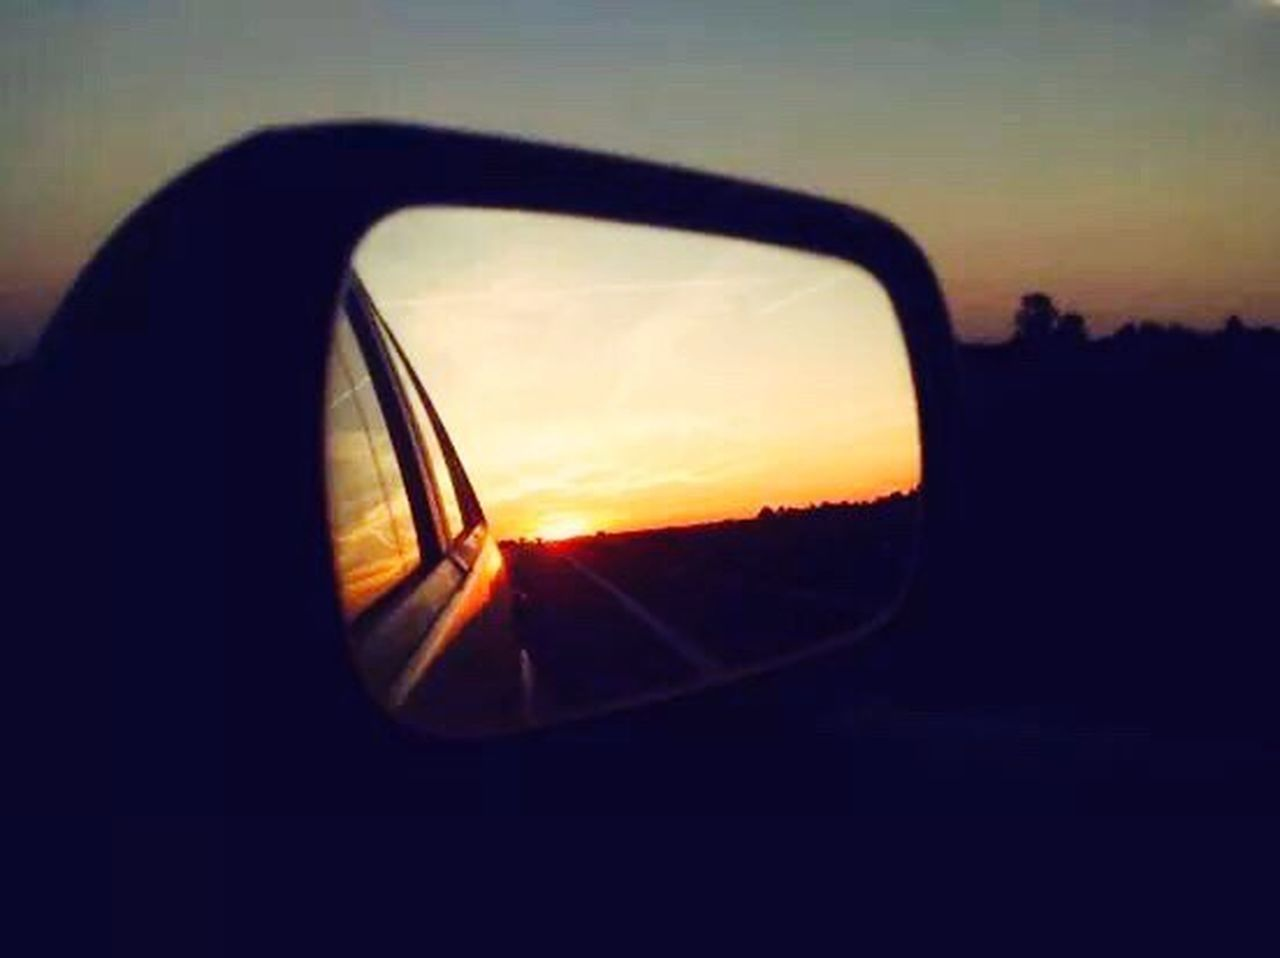 car, sunset, side-view mirror, transportation, reflection, vehicle mirror, land vehicle, mode of transport, road, sky, sun, no people, silhouette, outdoors, road trip, nature, day, close-up